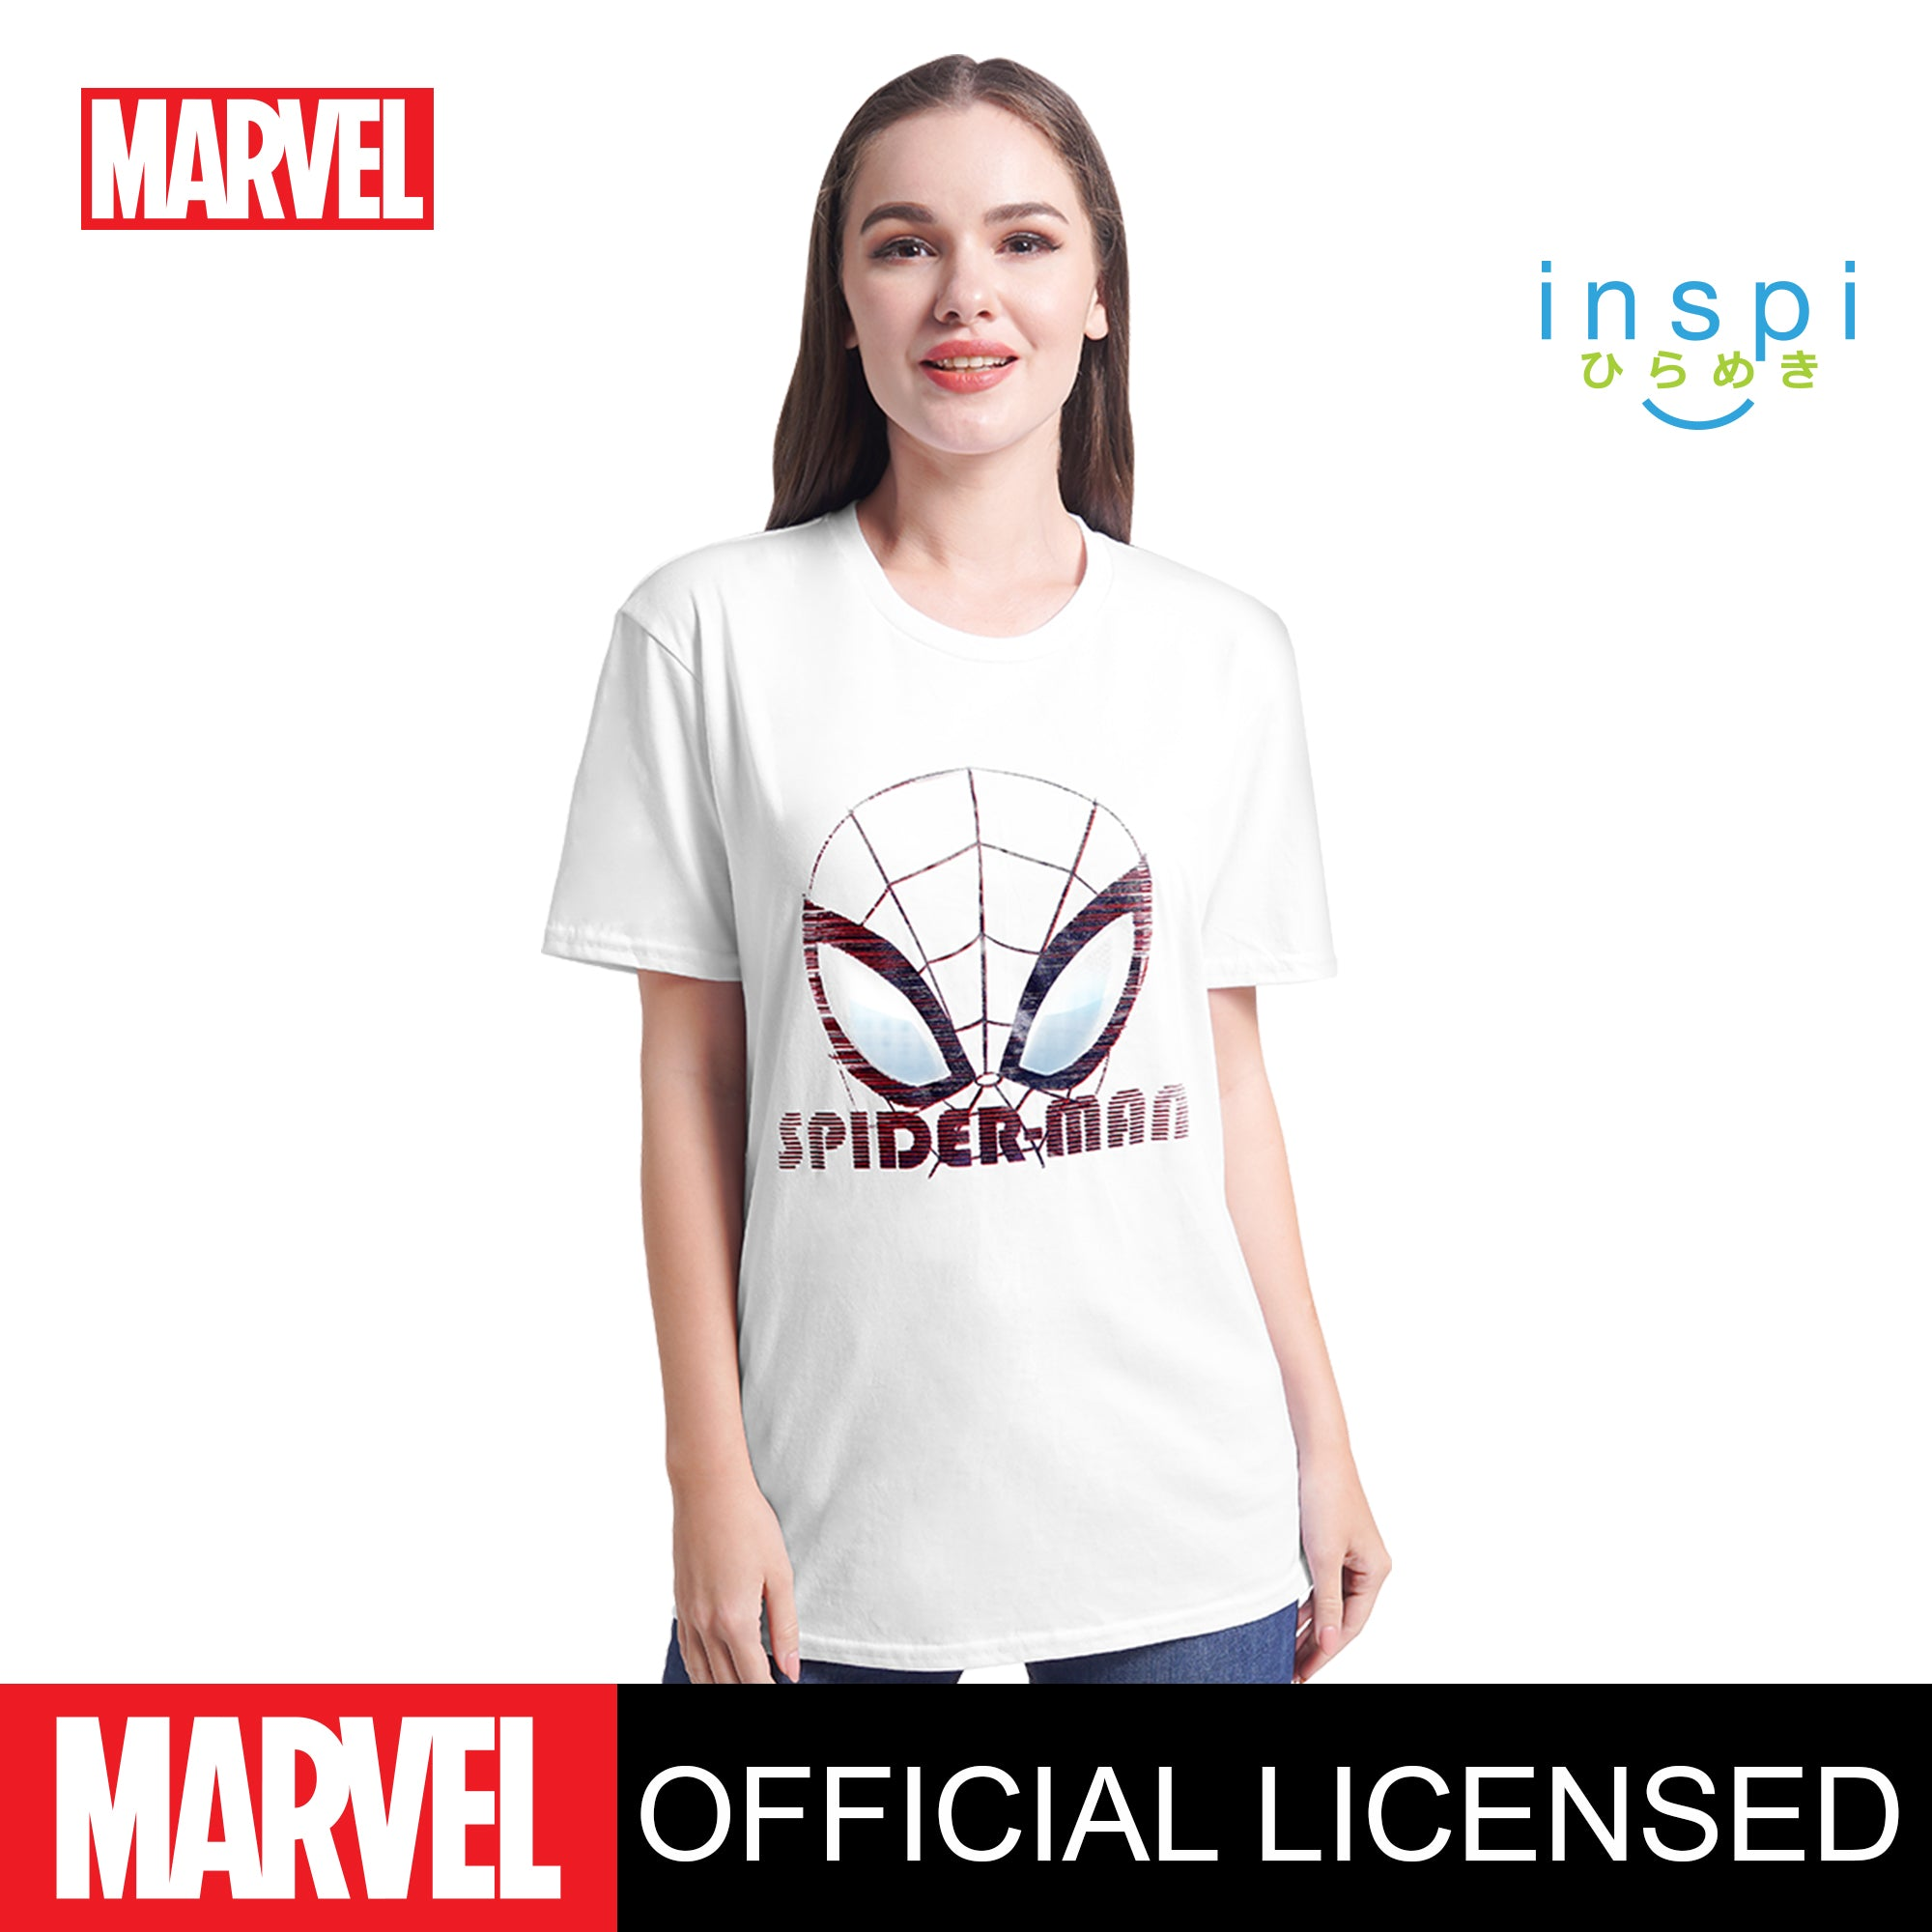 Marvel Spider Man Glitch Effect Graphic Tshirt in White for Men and for Women Inspi Shirt